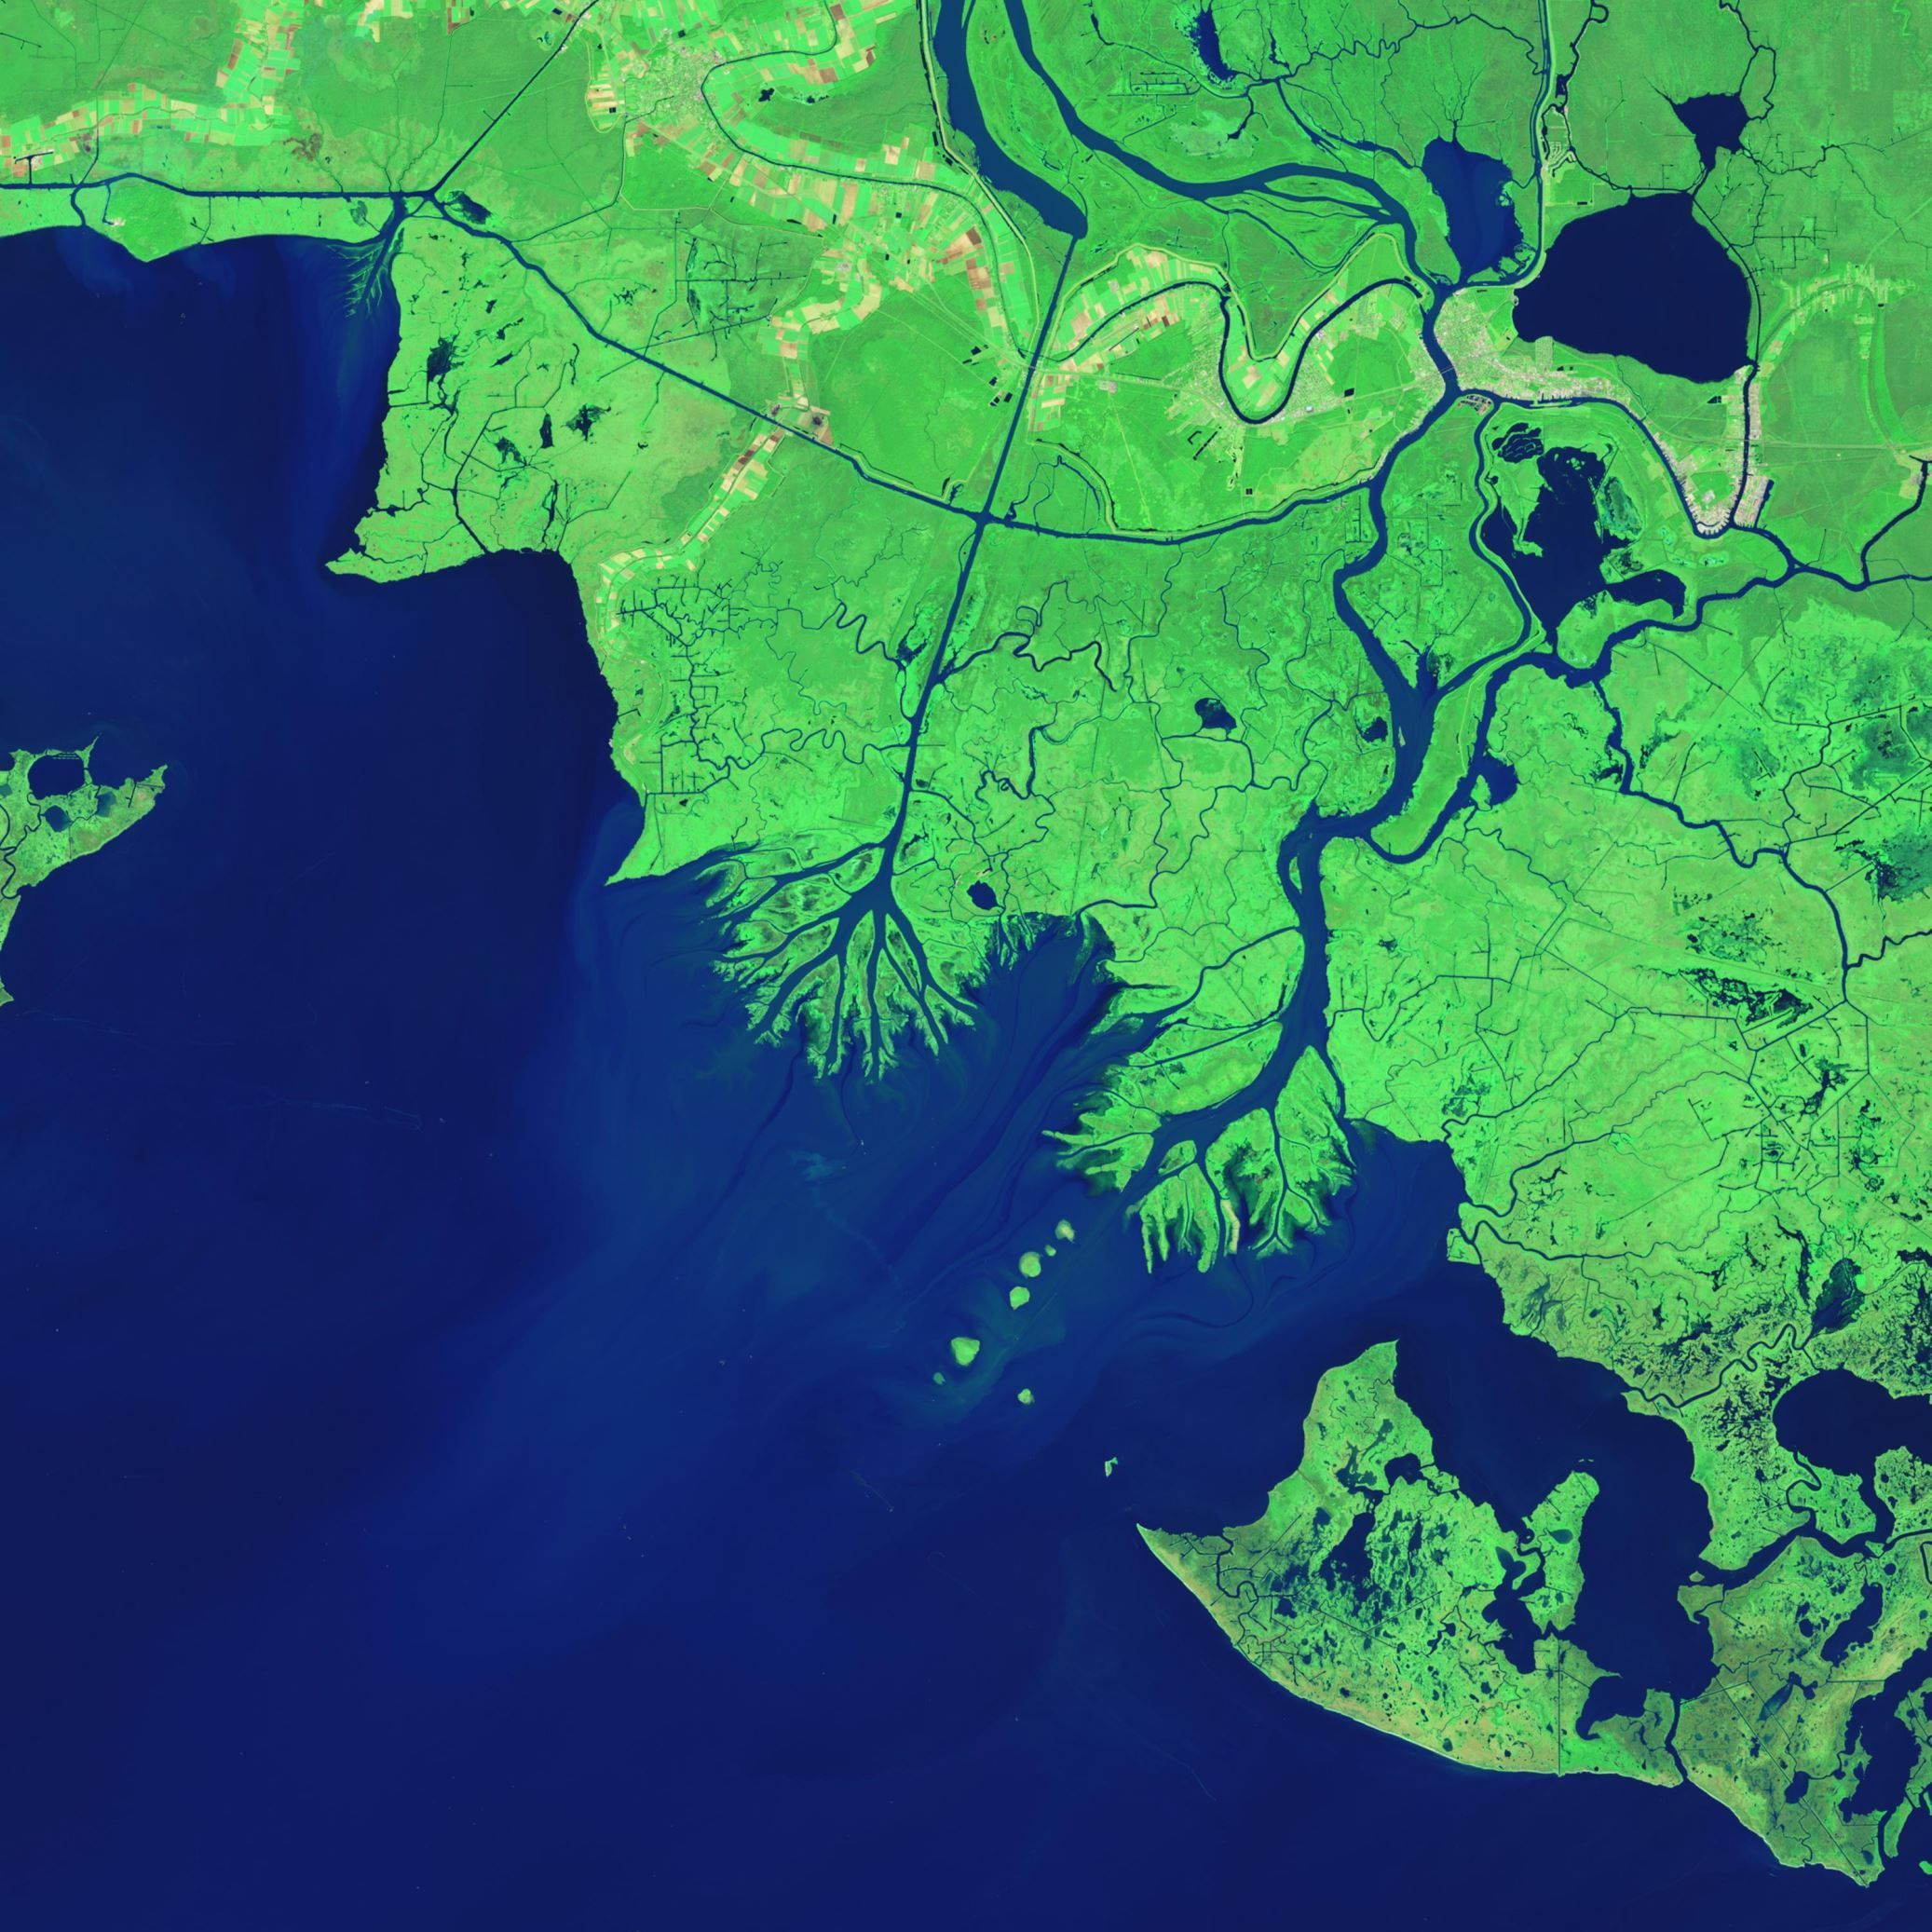 Growing Deltas In Atchafalaya Bay The Delta Plain Of The - Mississippi river delta map